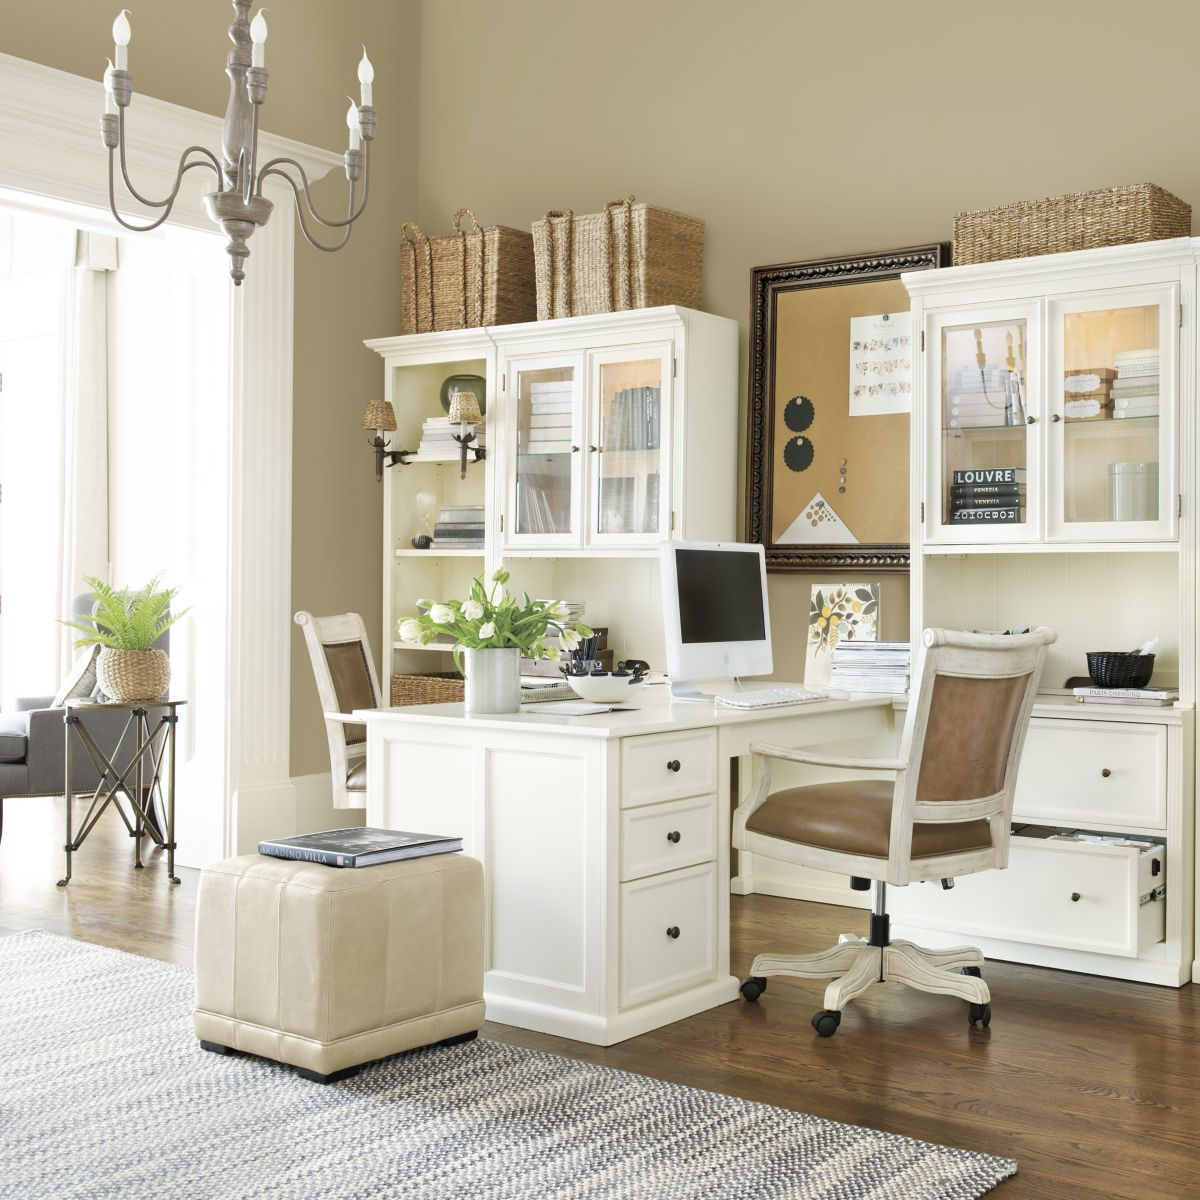 White And Airy Home Office Like The Way Desks P Out So 2 People Can Work In A Small E